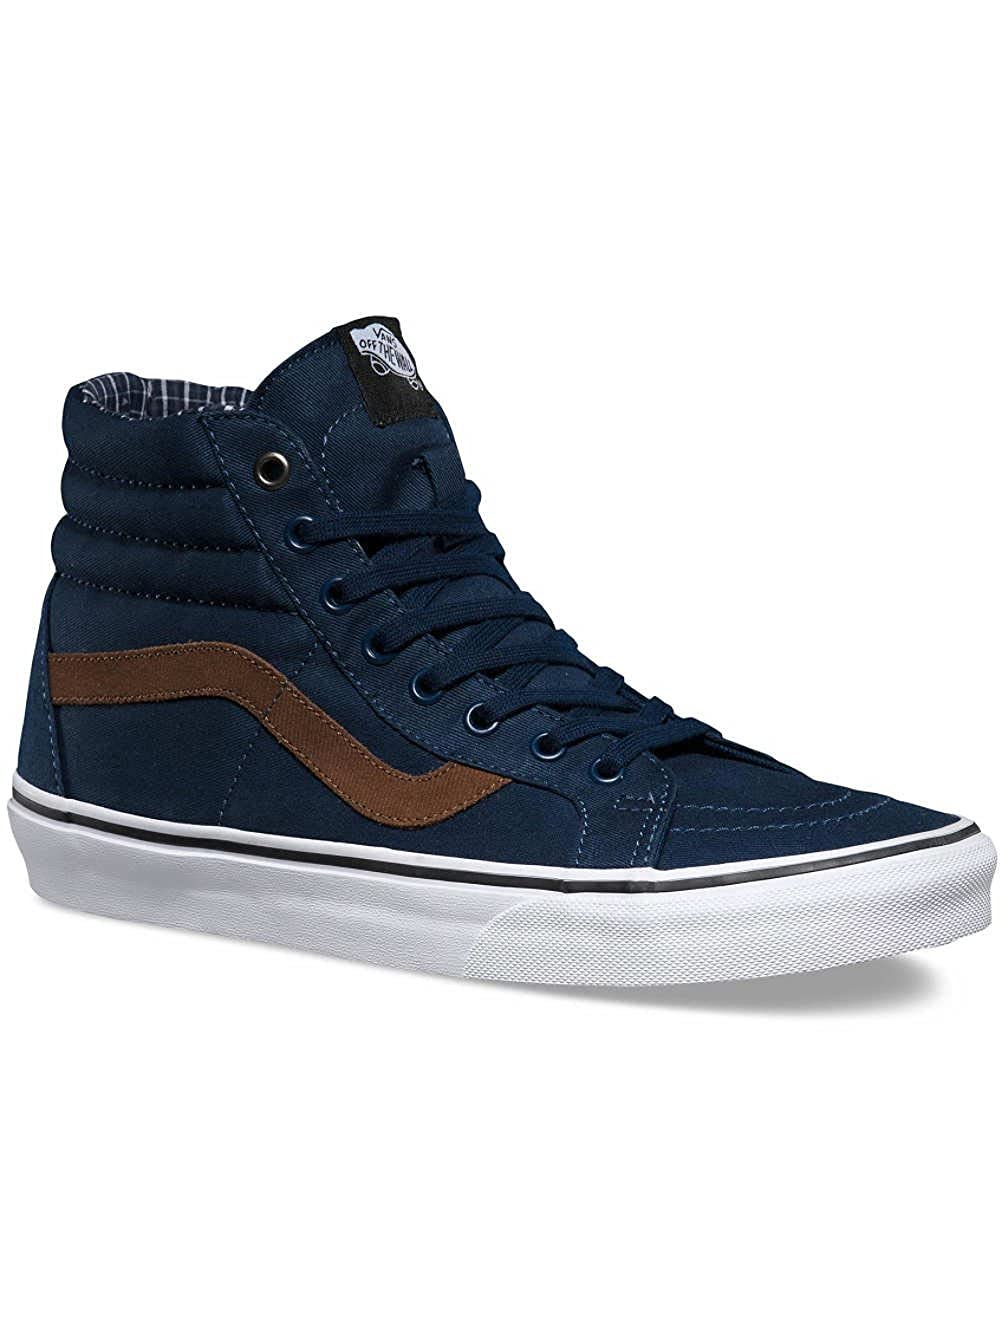 blue and brown high top vans